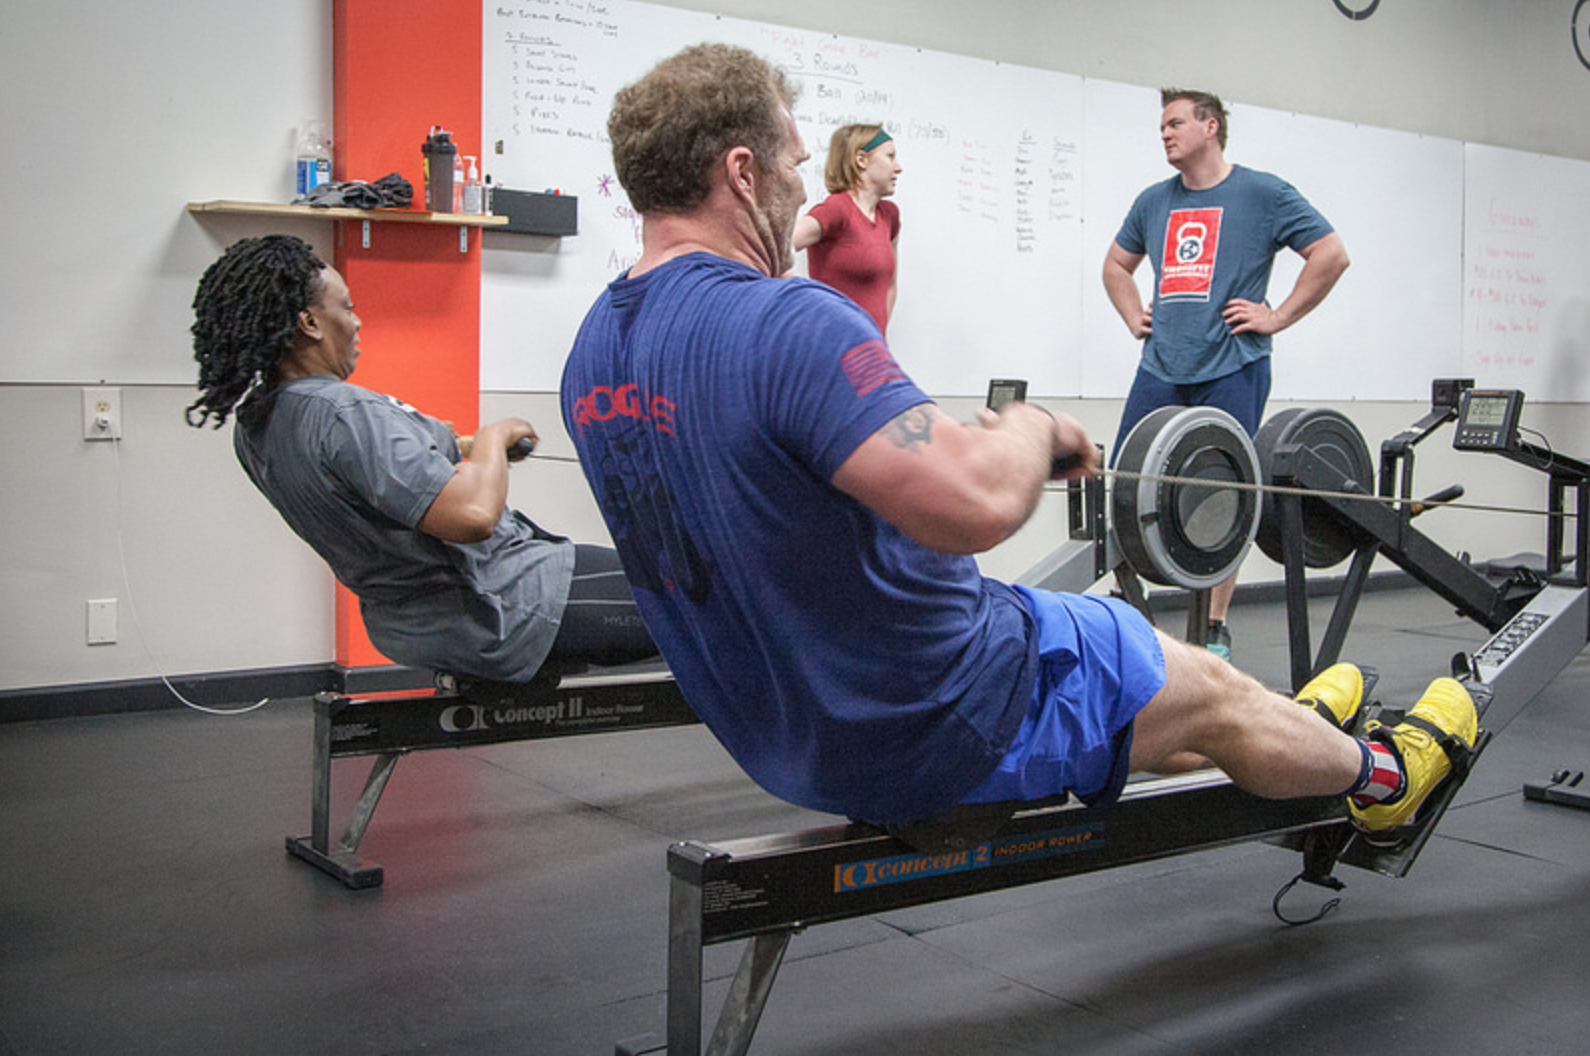 Our Mission - We know you have a choice when it comes to fitness facilities. At CrossFit West Nashville, our mission is to serve our community's health, wellness, and fitness needs through simple solutions that allow our members to be successful today, tomorrow, and for their rest of their lives.